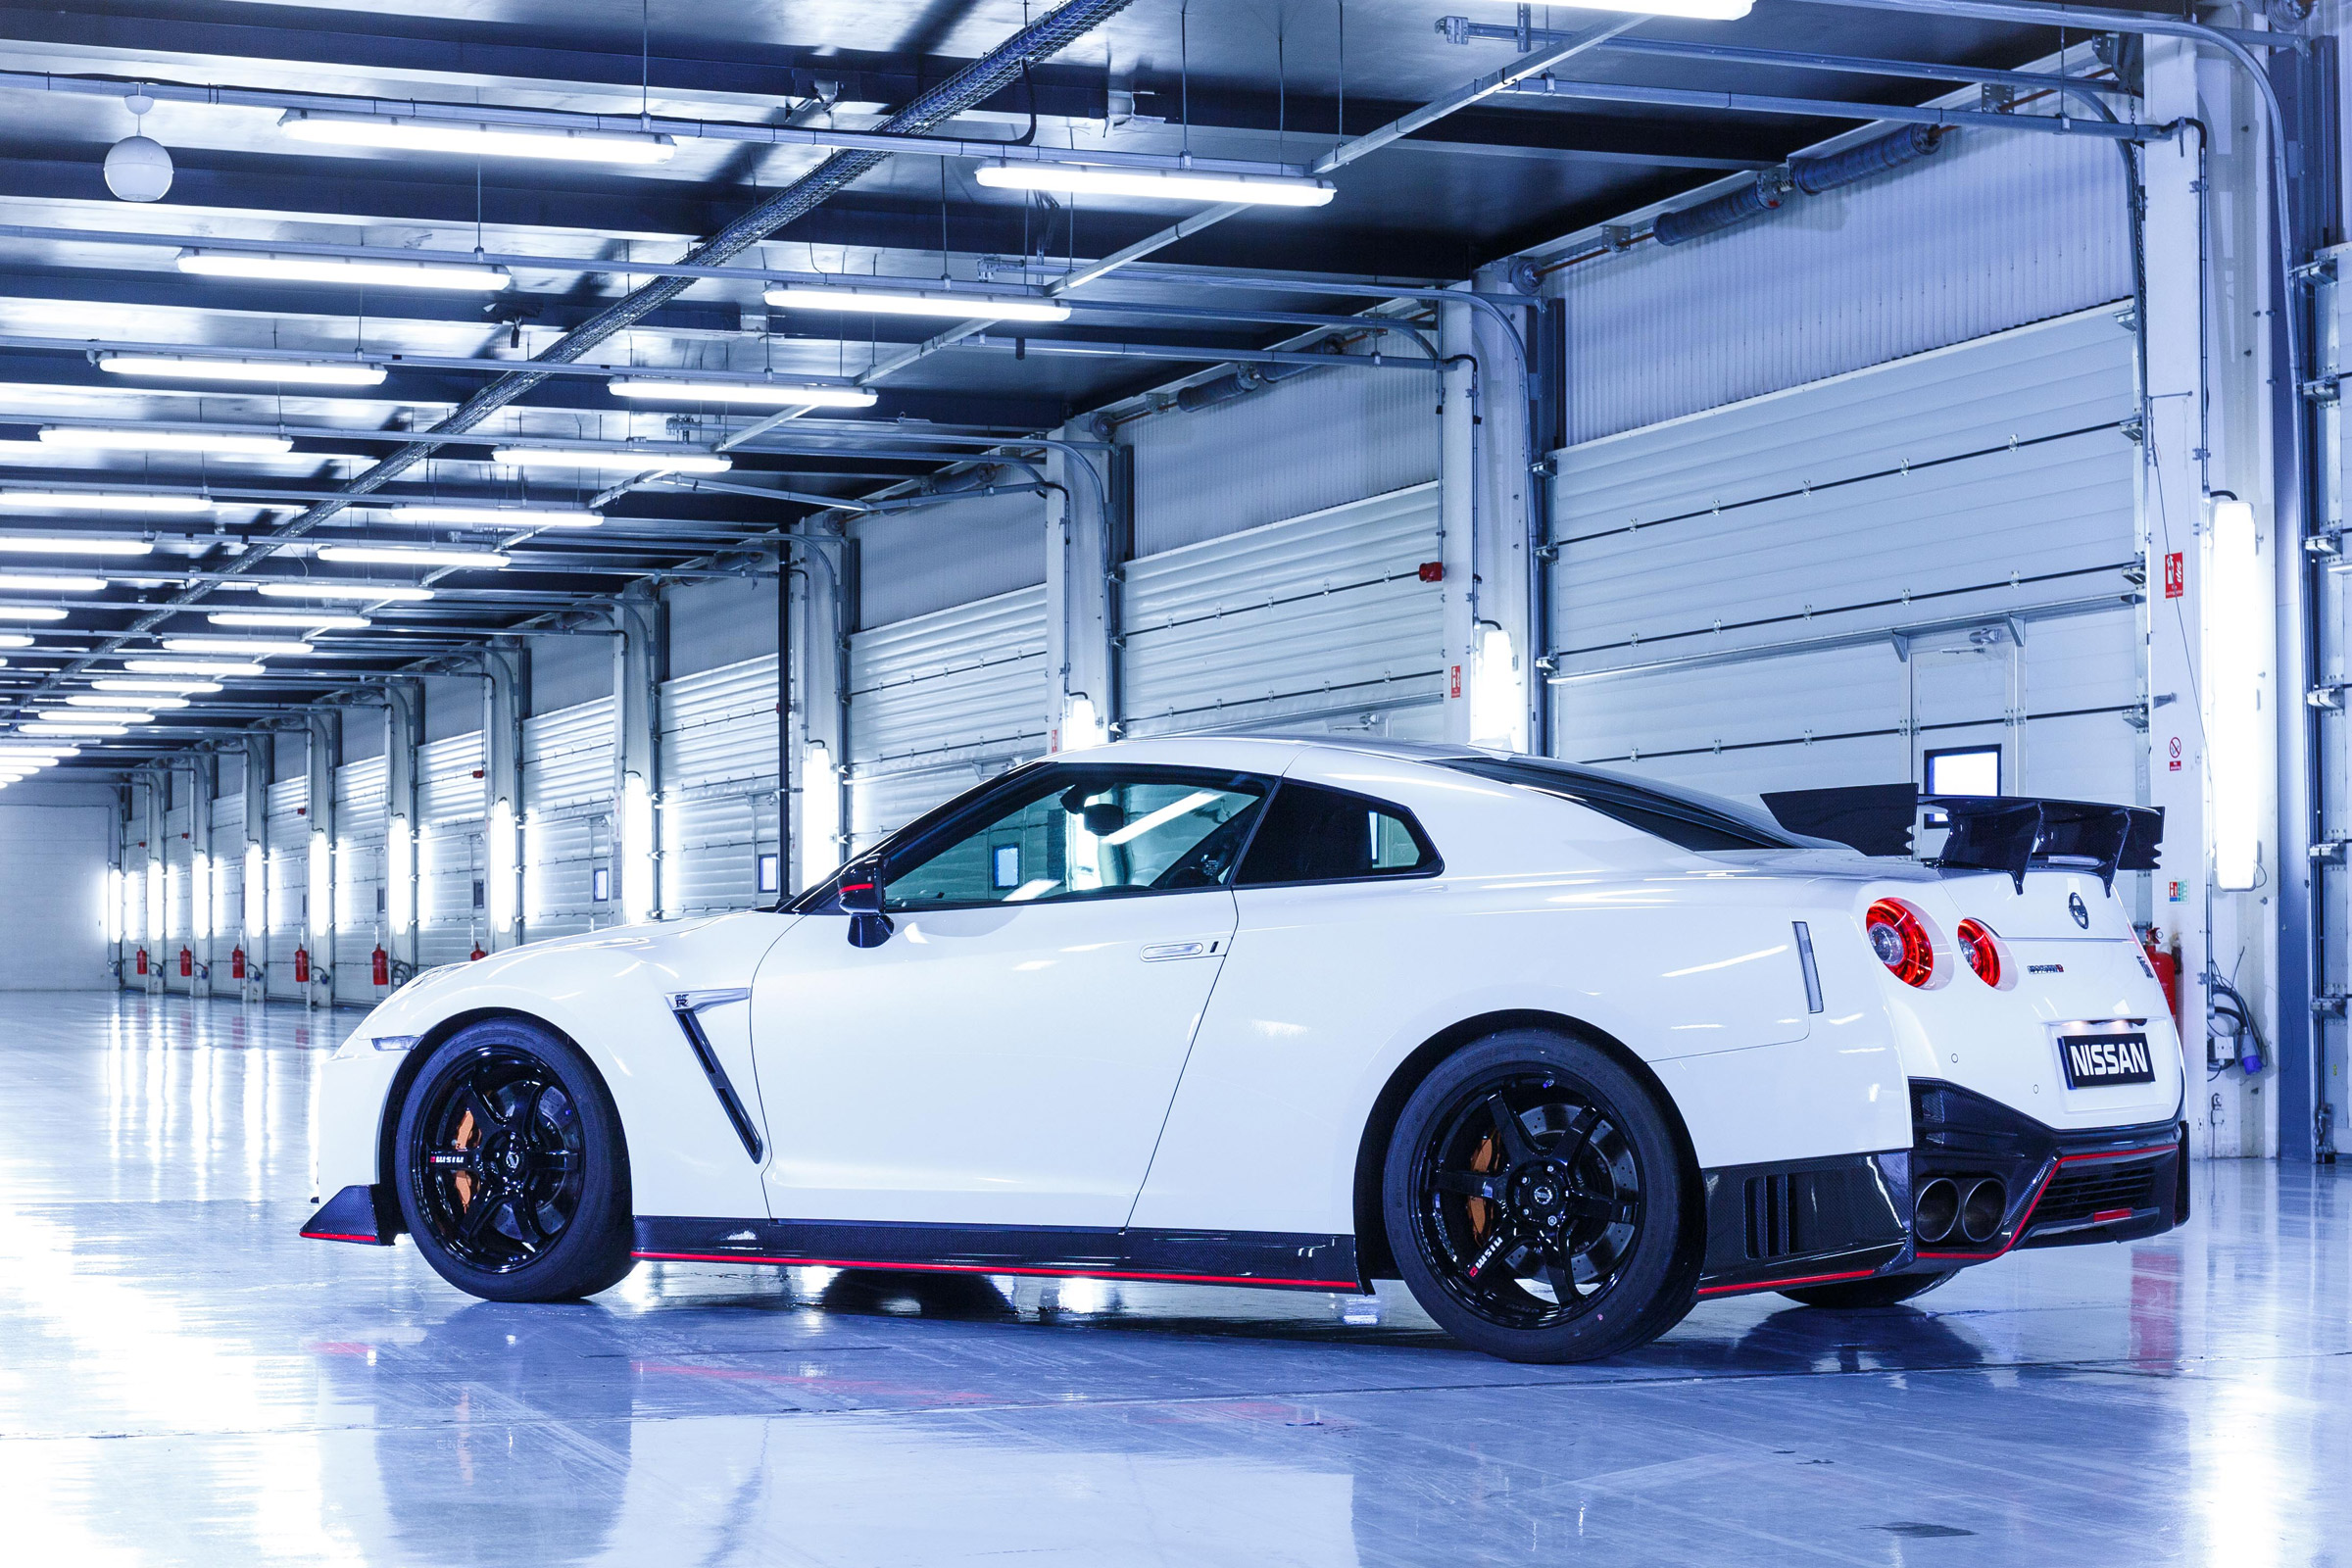 2017 Nissan GT R NISMO Exterior Rear And Side (Photo 6 of 22)